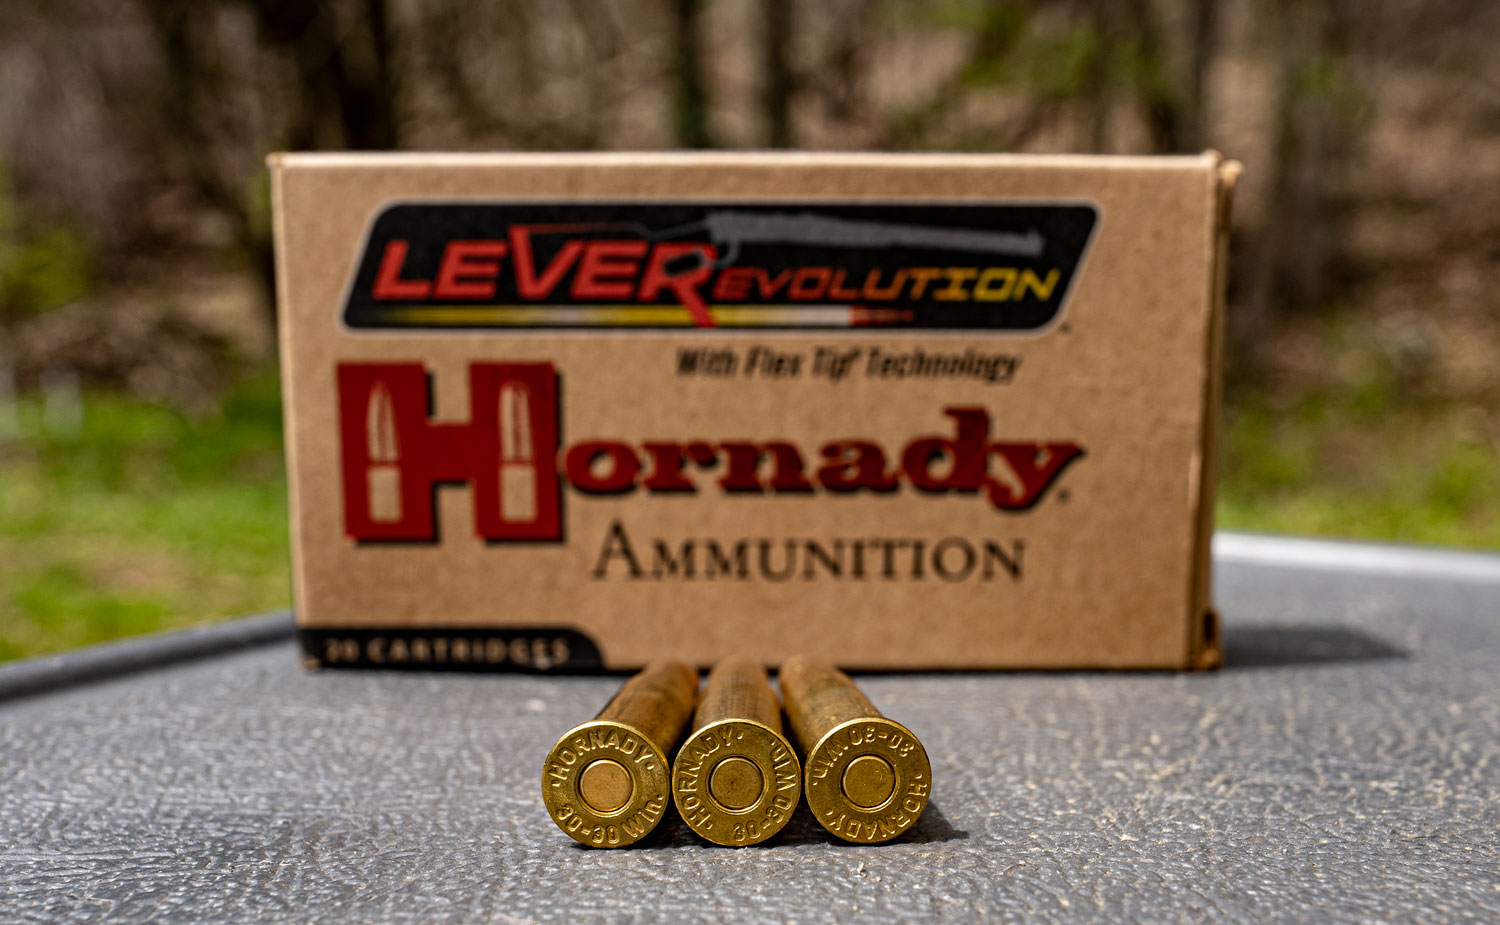 LeveRevolution ammo on a table with box